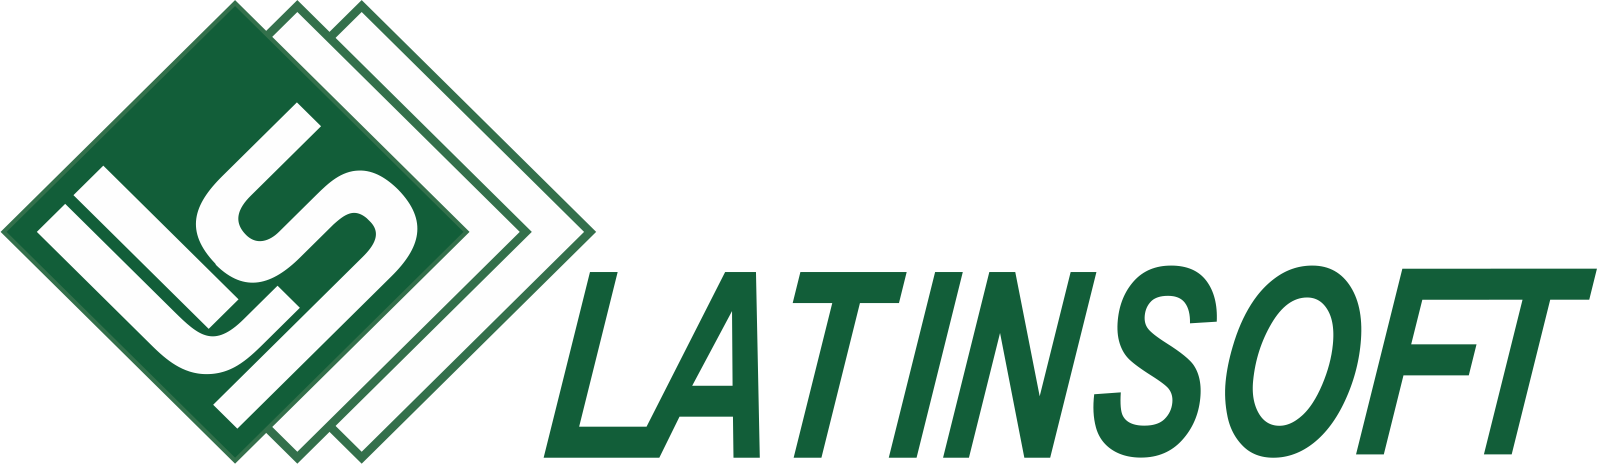 Latinsoft-logo